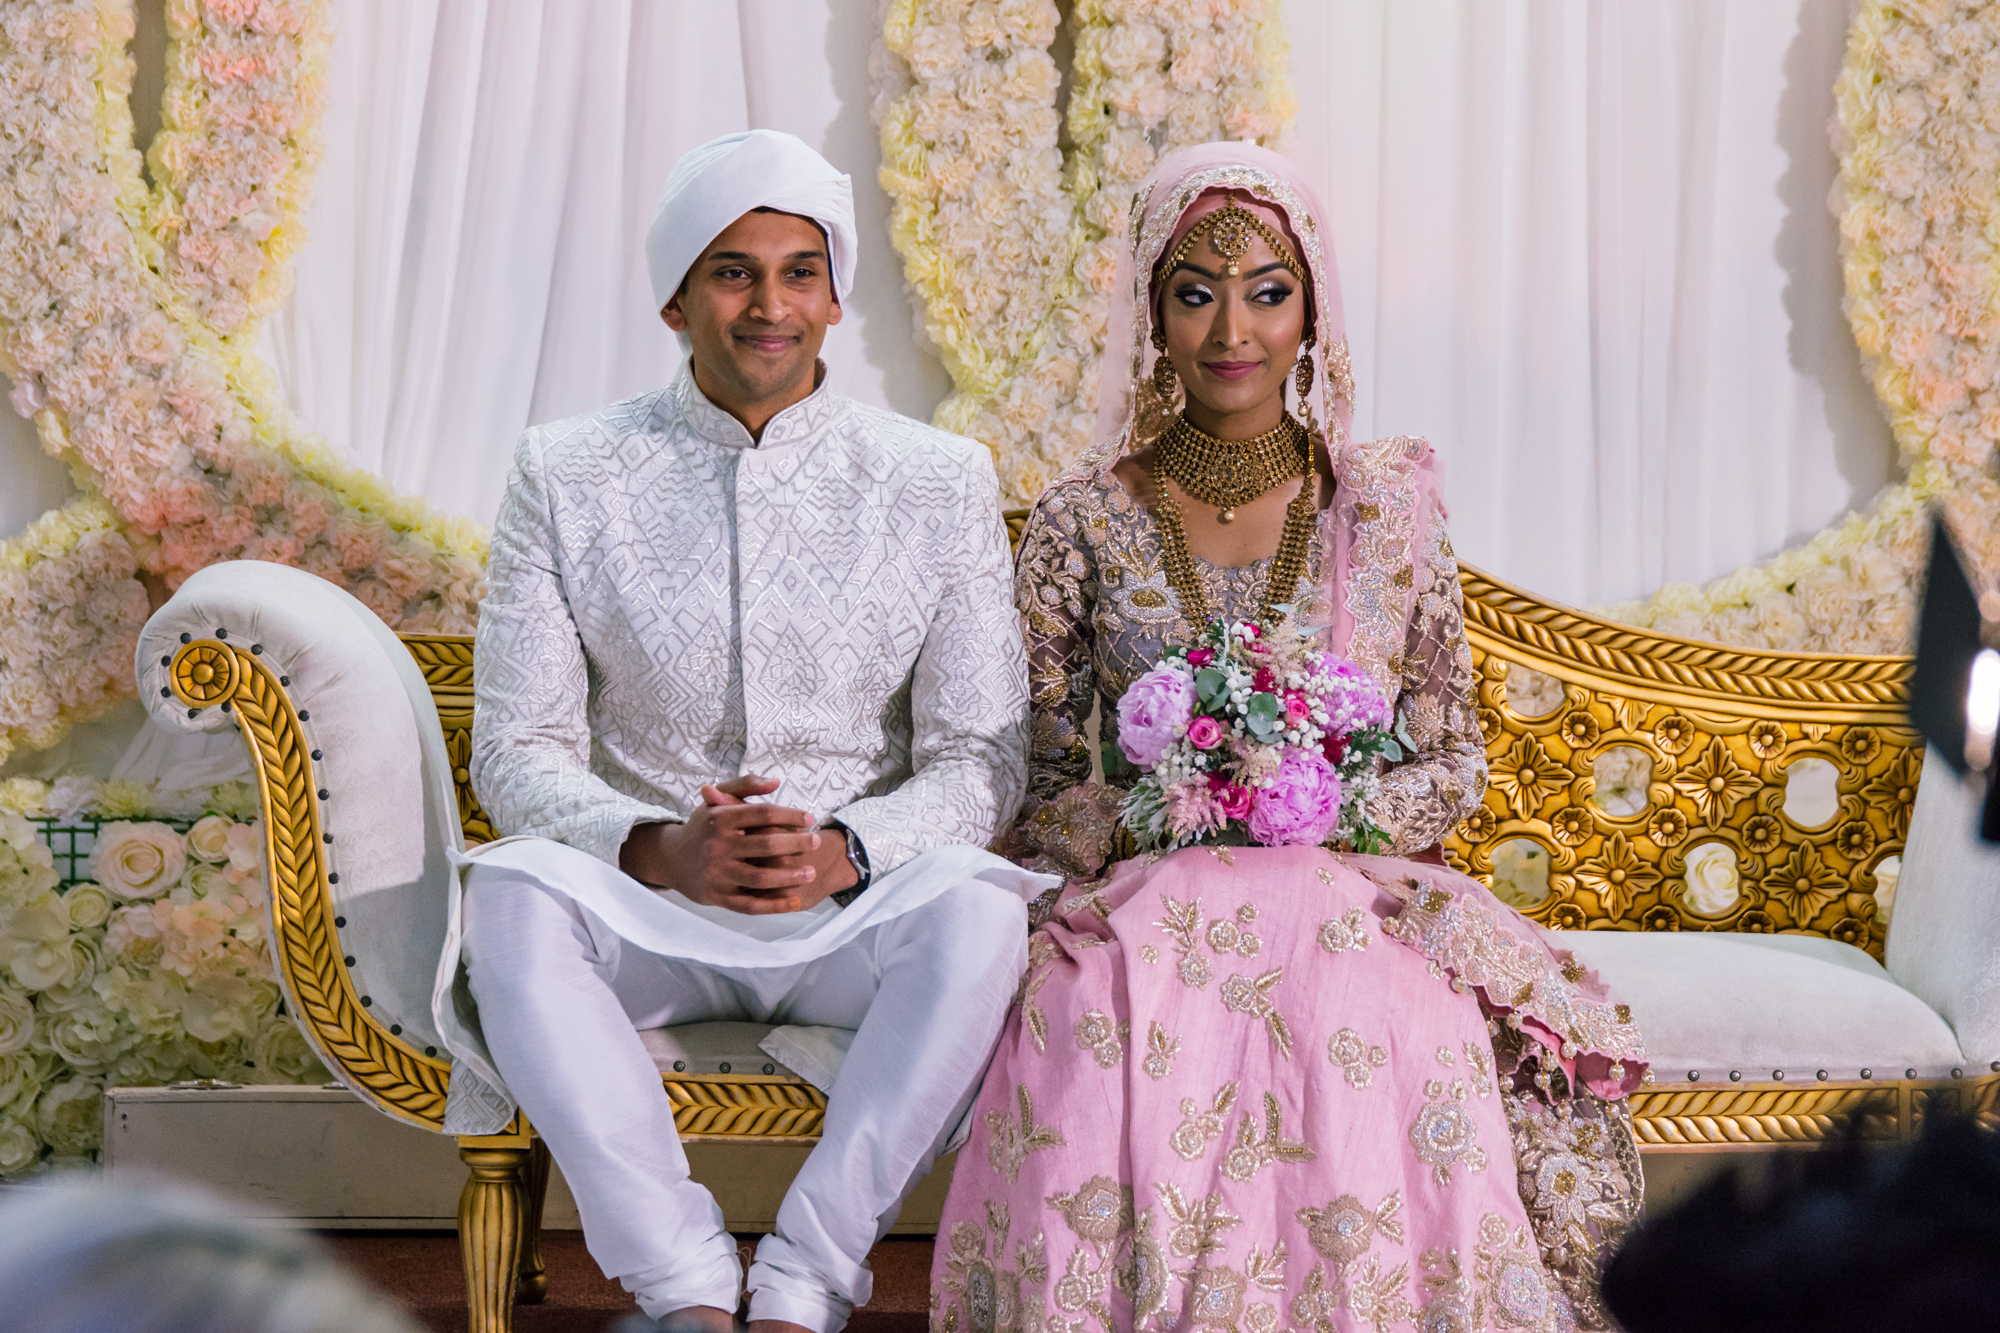 the bride and groom sit together on a double chair on the stage of the wedding venue. The groom wears traditional indian wedding clothes, in pure white. The bride is in pink and gold